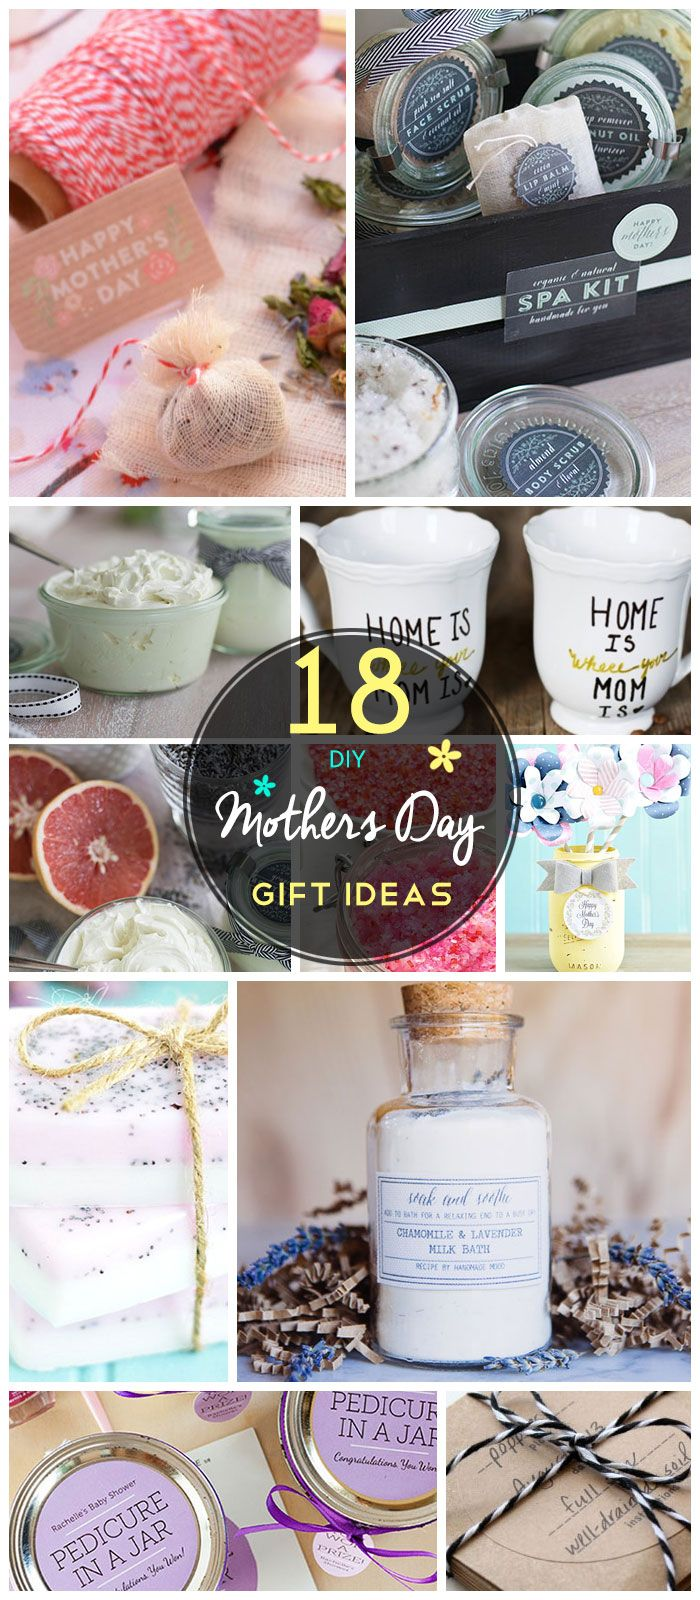 Click Pic For 18 Diy Mothers Day Gift Ideas For Kids To Make